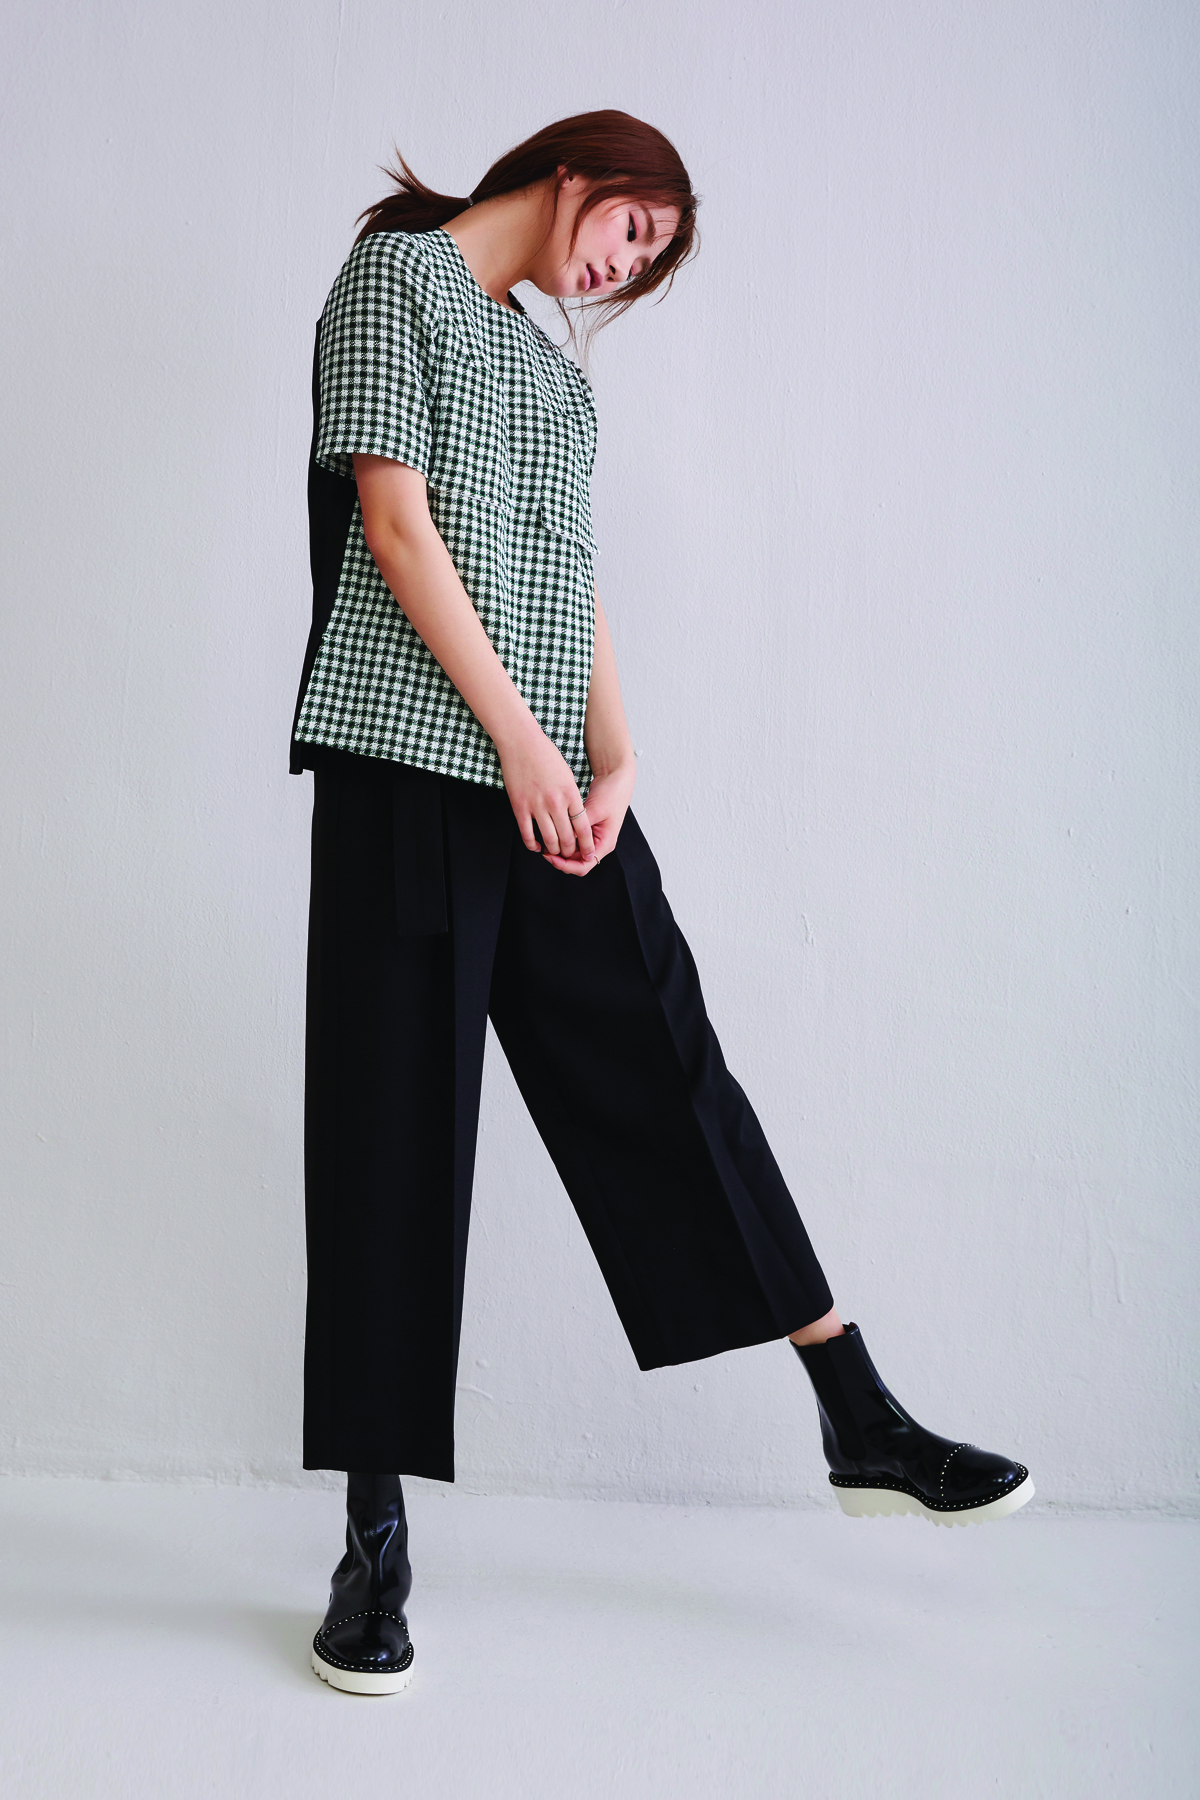 [50%OFF] Green Check Patterned Crop Top with Black Silk Contrast